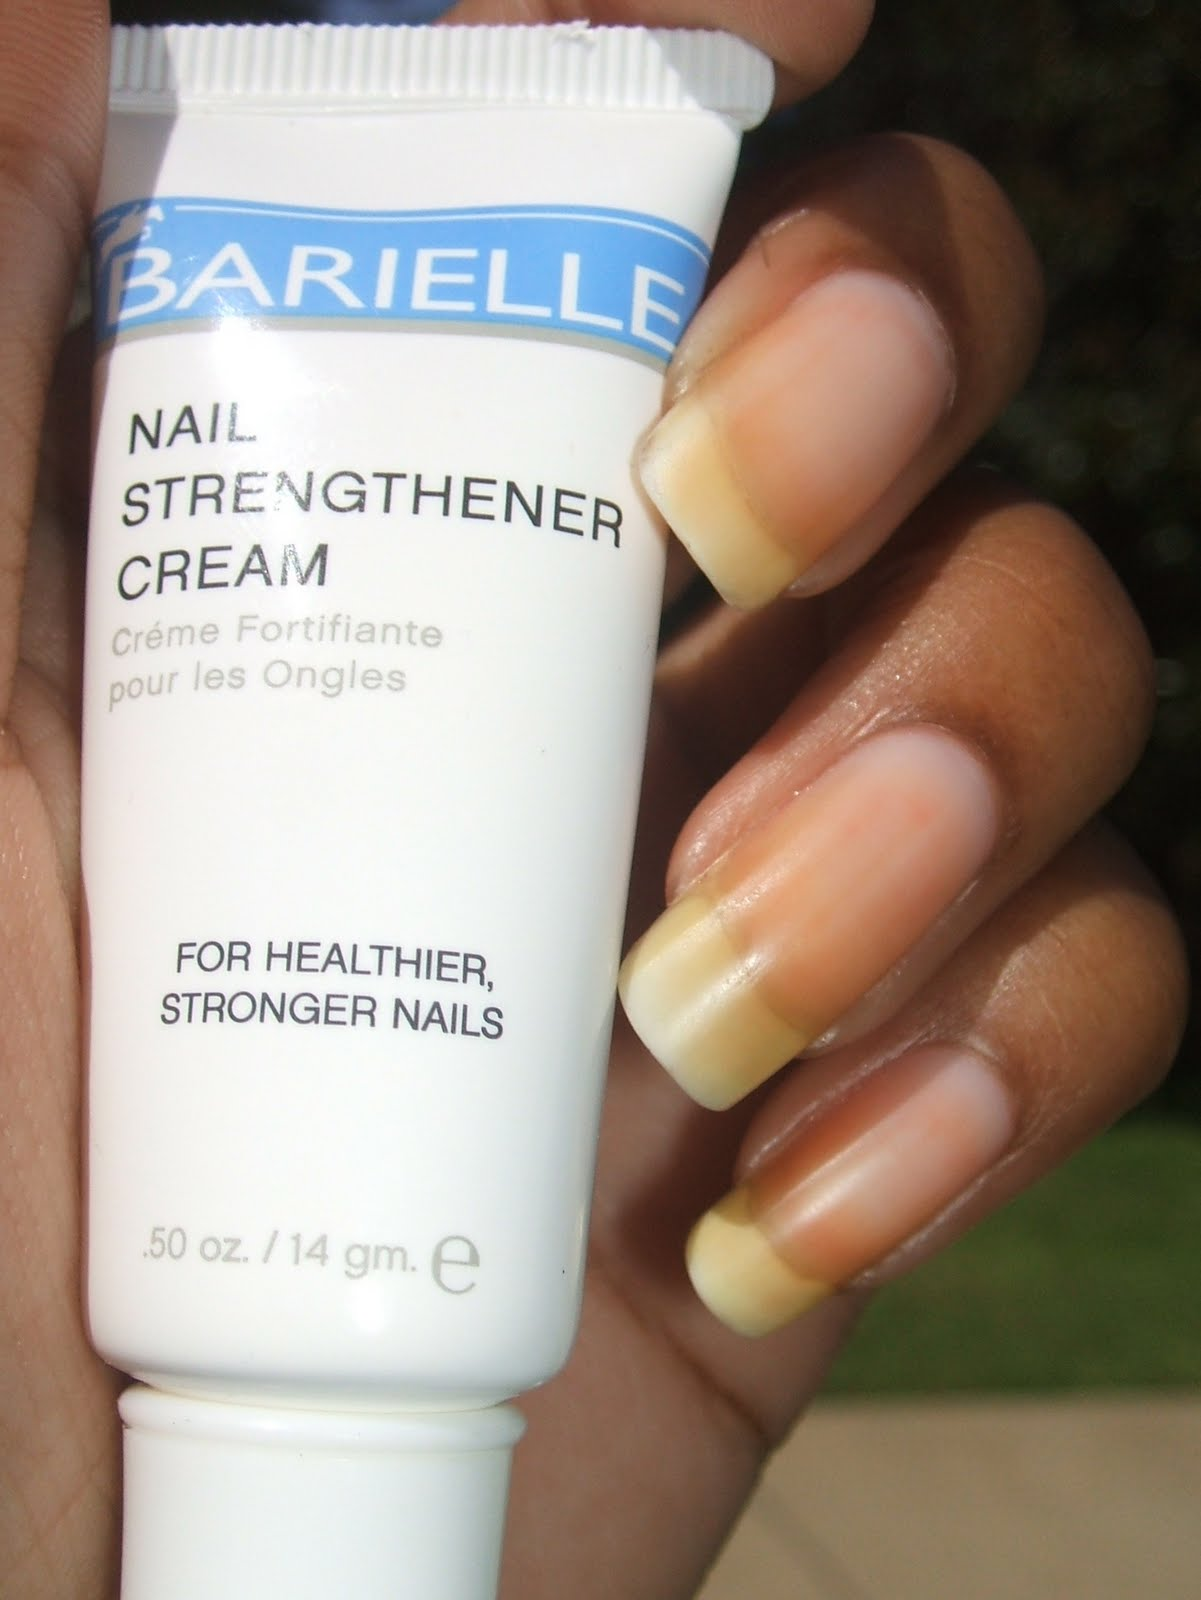 I Ve Used The Cream Daily Since Then To See How It Would Perform On My Nails As Mentioned Before Was Experiencing Some Ling So Had High Hopes For